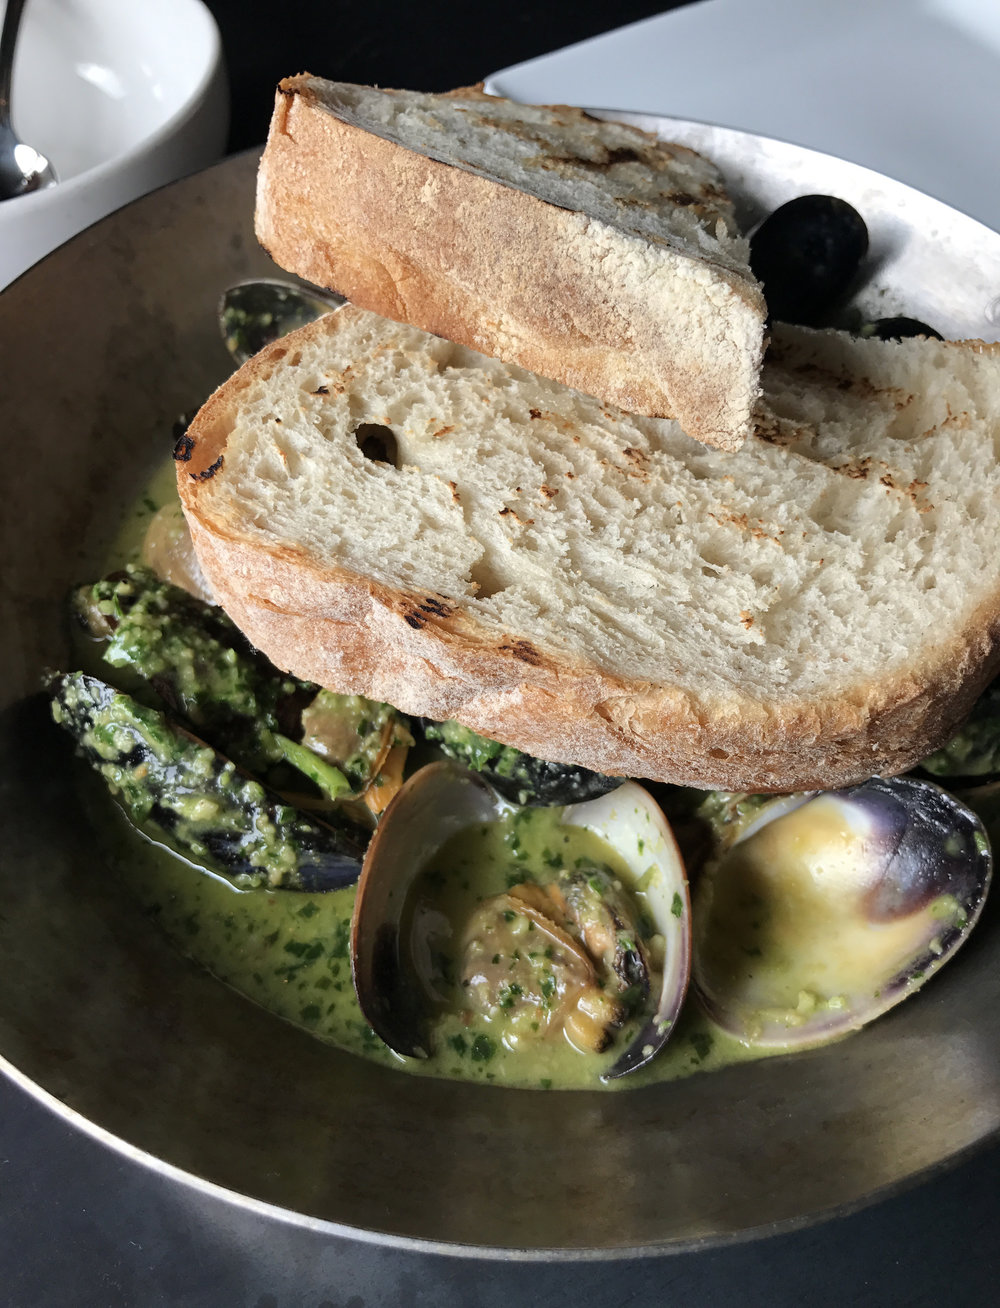 Steamed mussels and clams with serrano pesto broth with cashews and grilled country bread